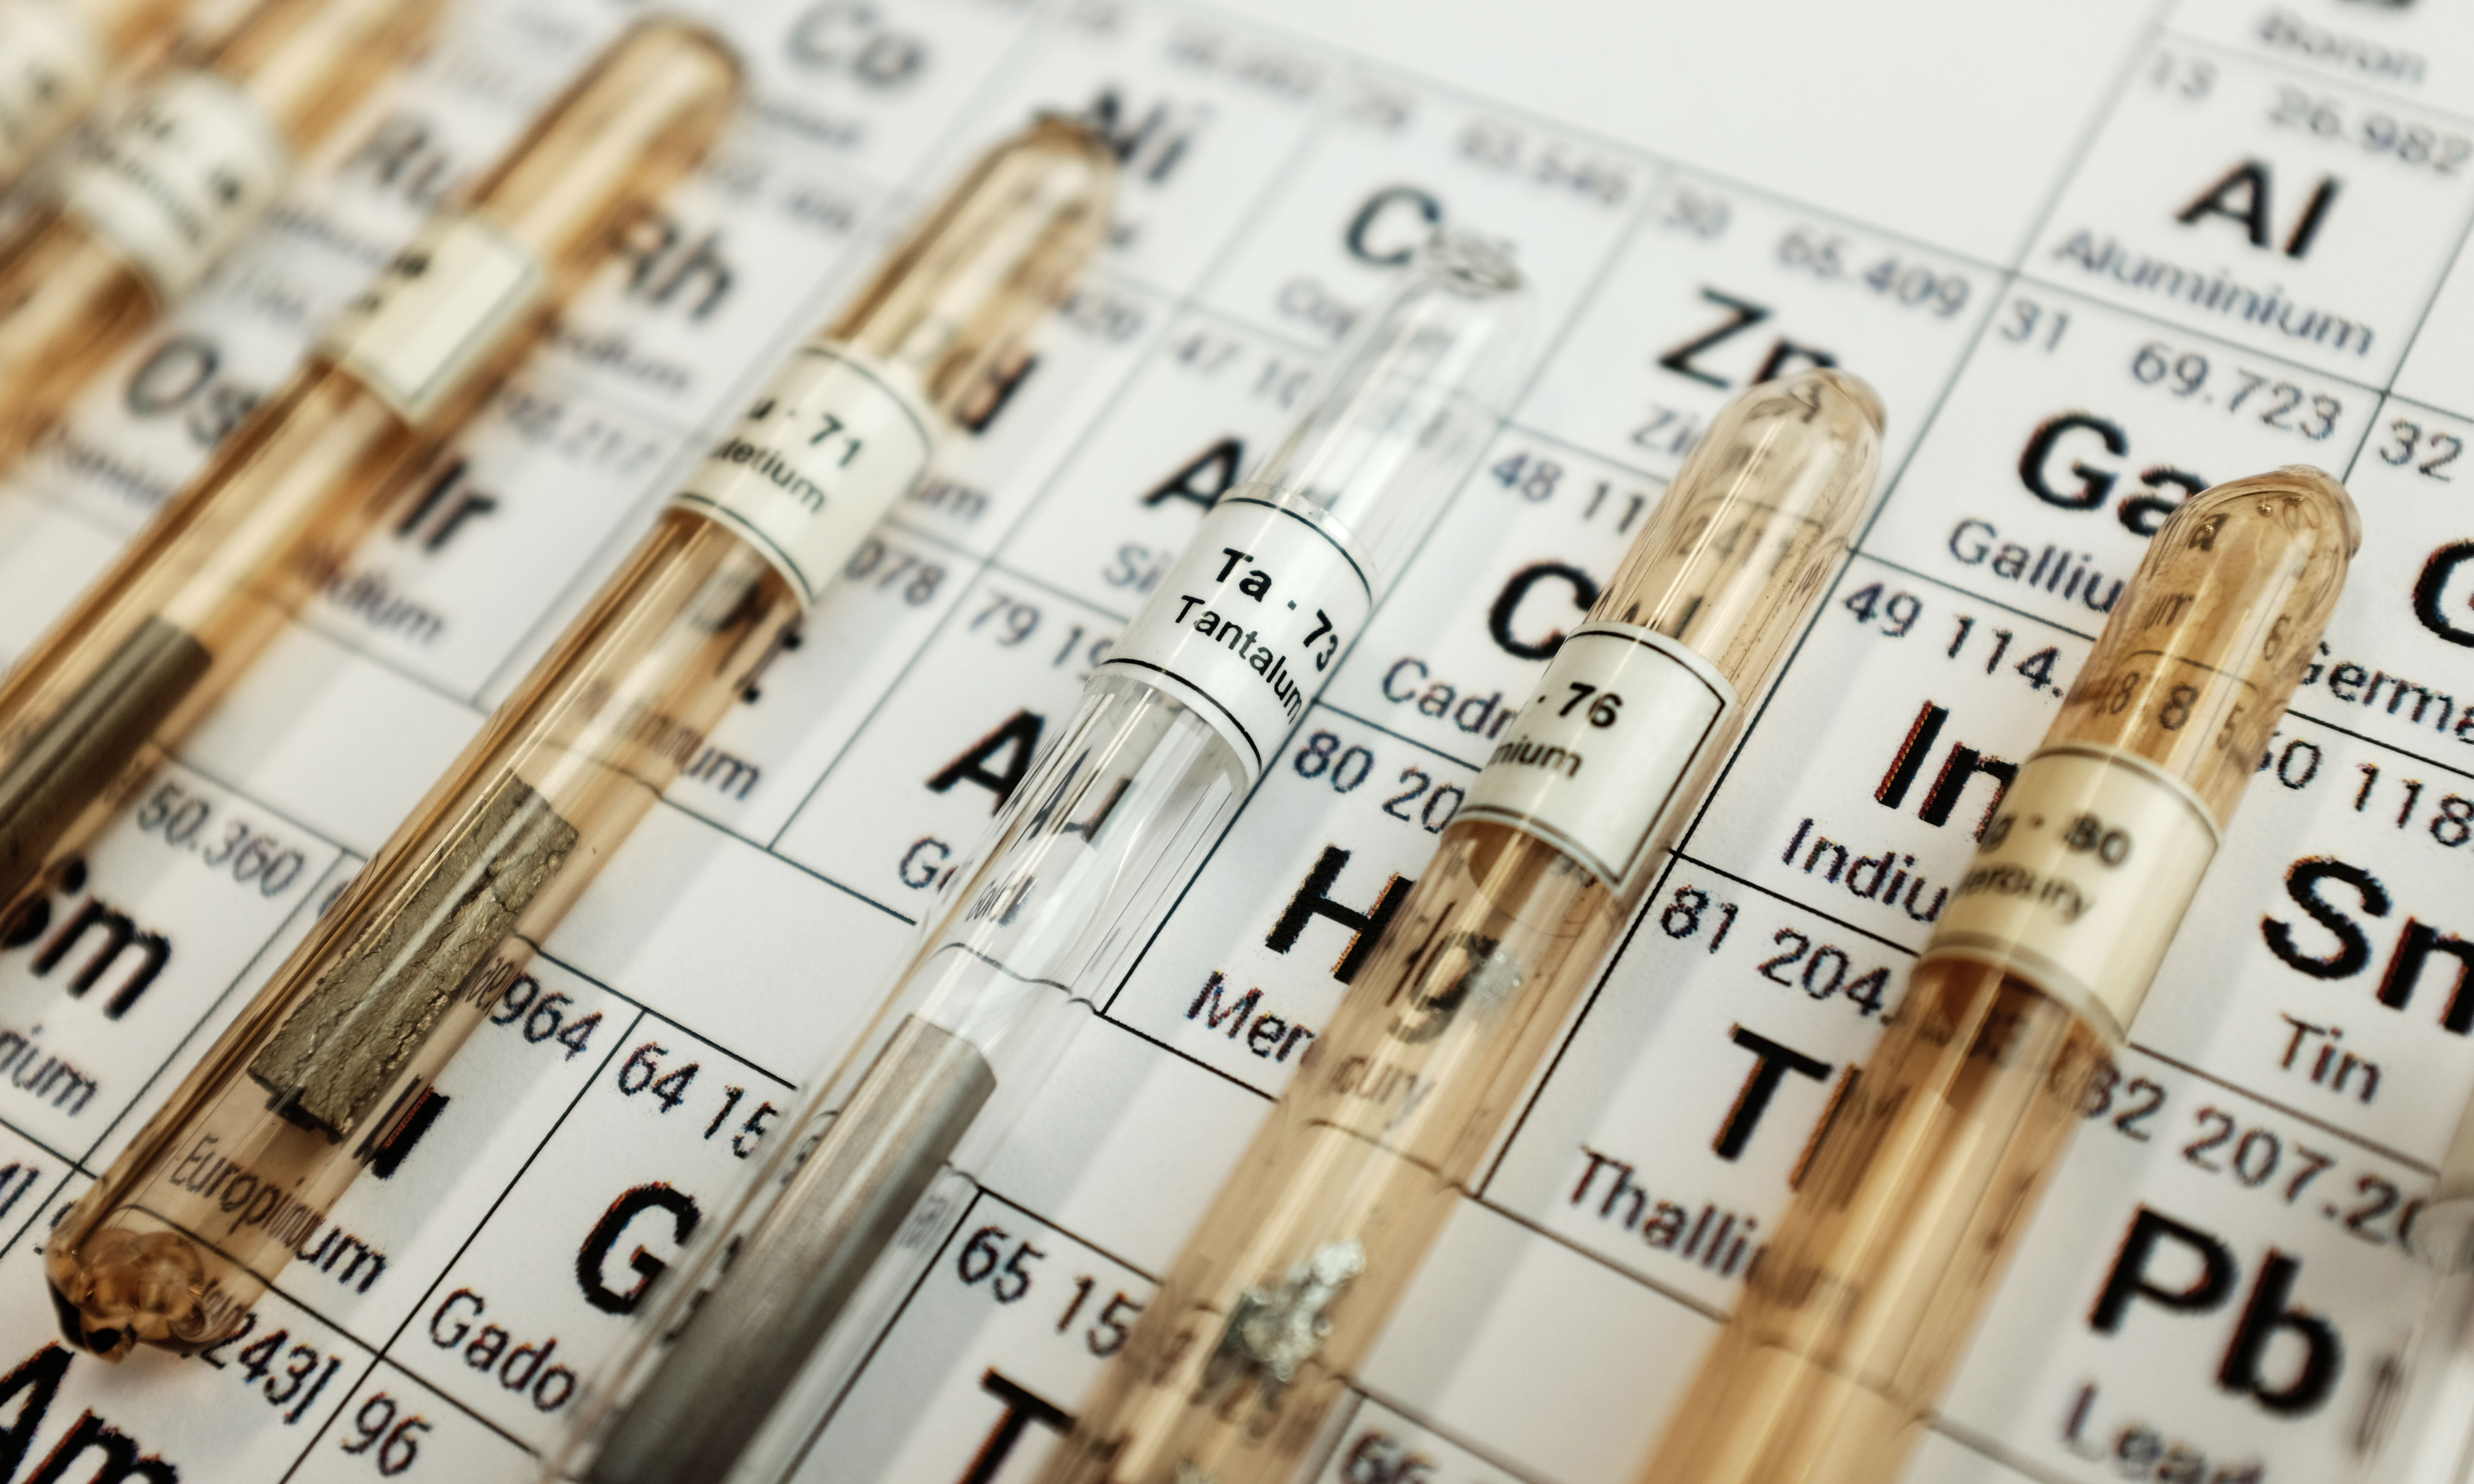 Photon assay tubes of x-ray gold analysis lined up across a copy of the periodic table.